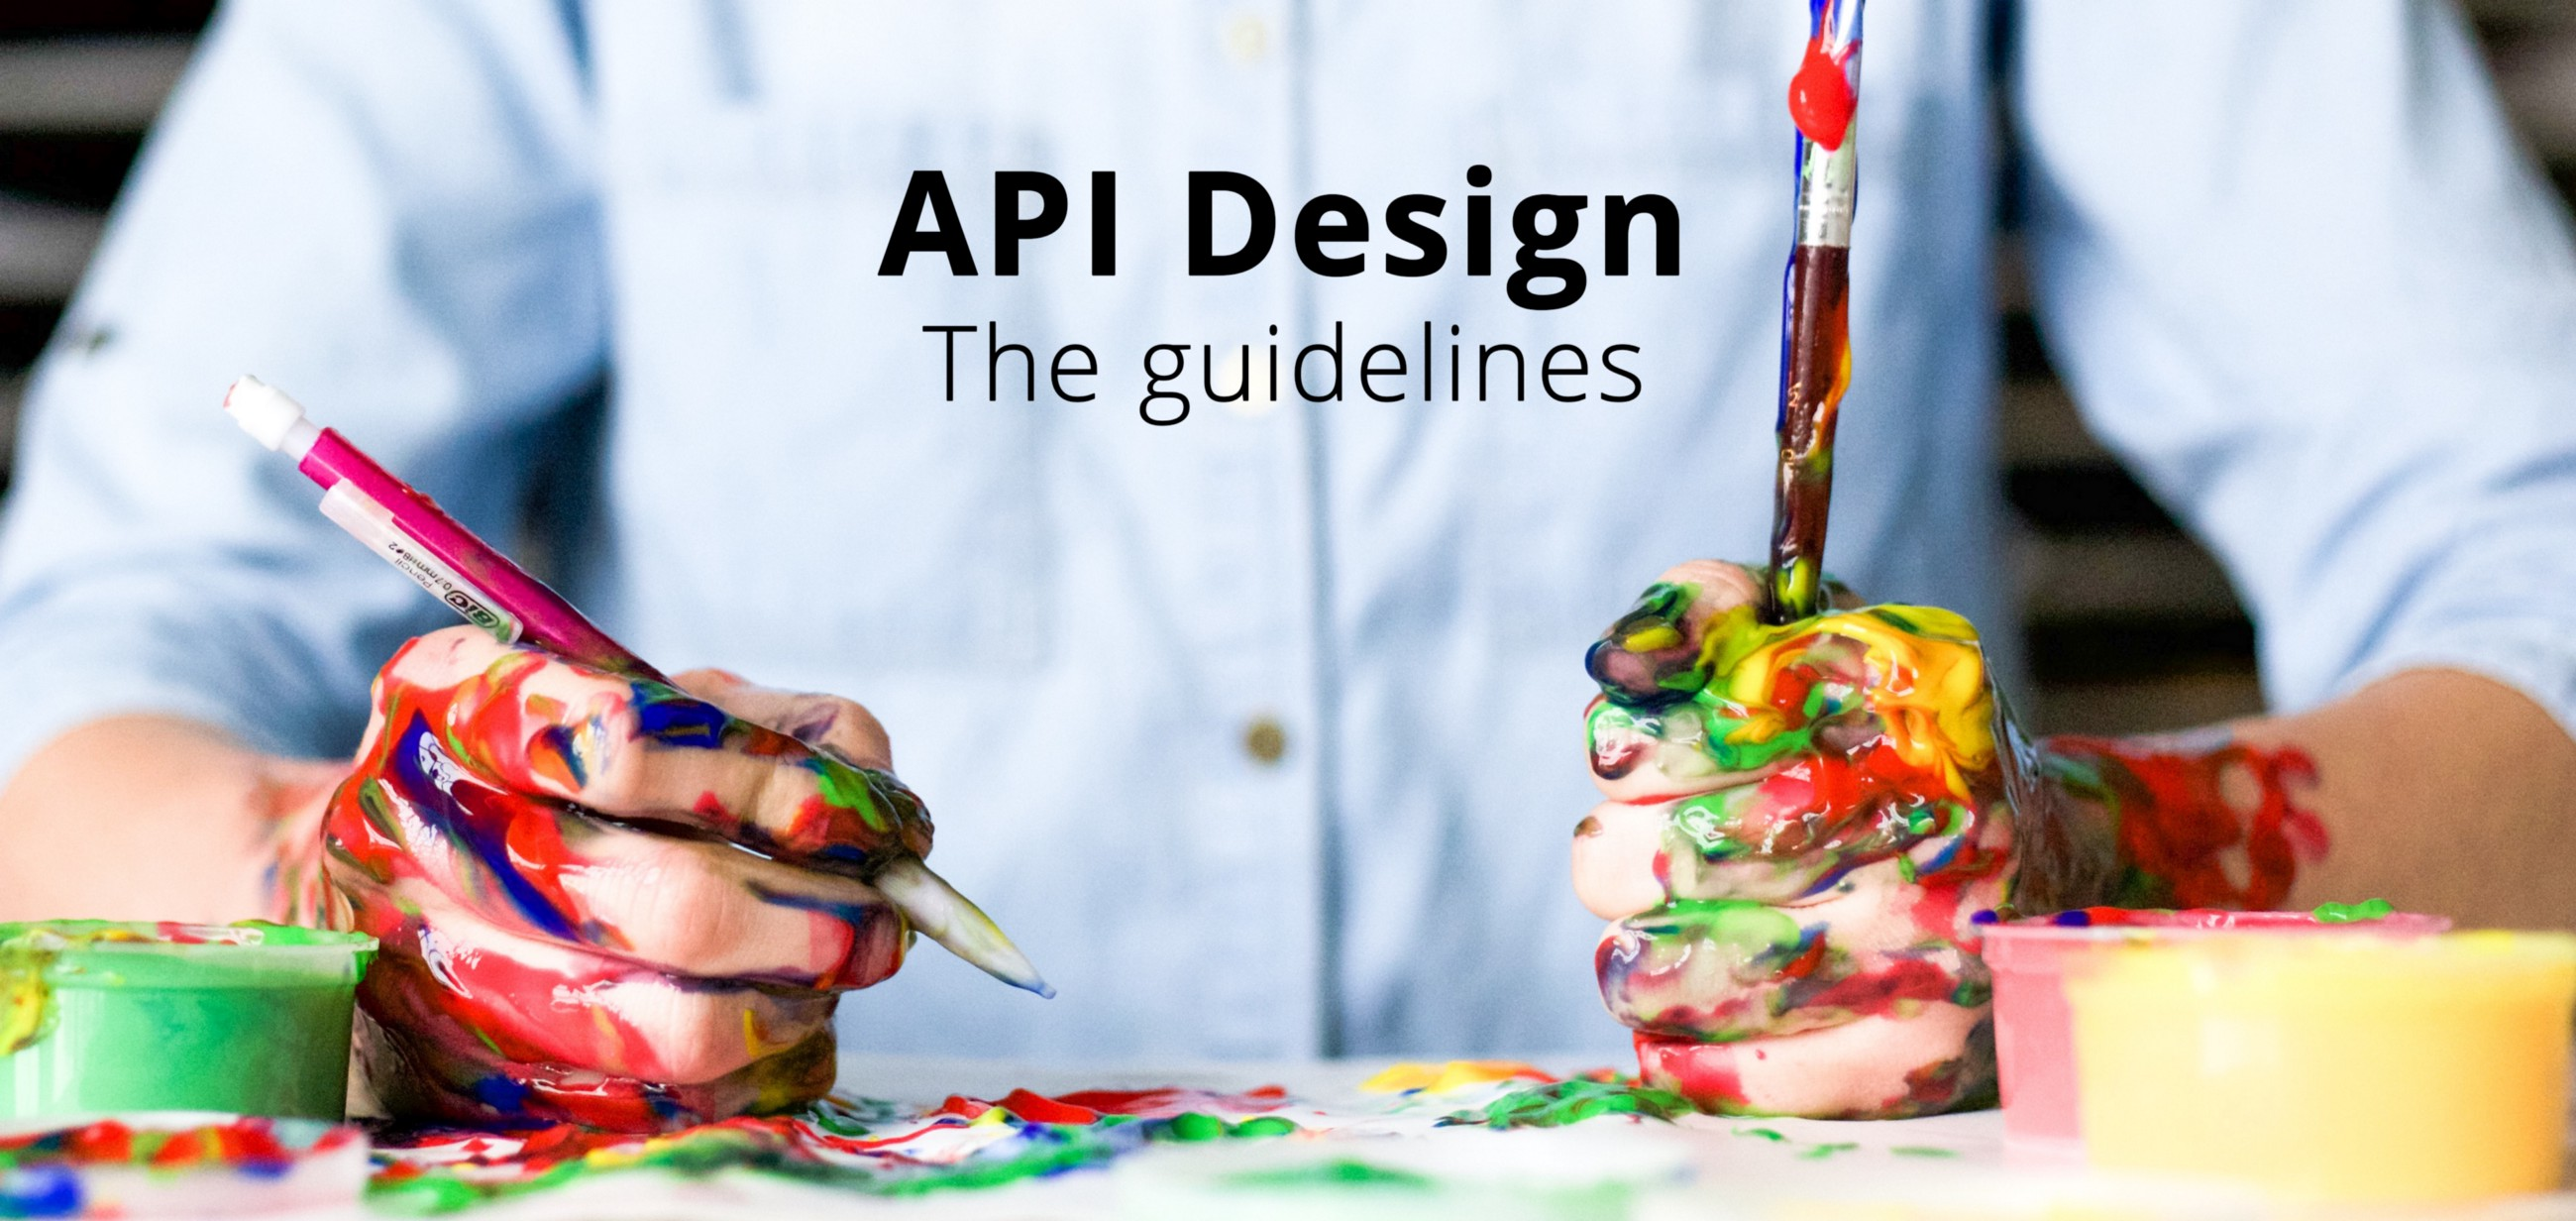 RESTful API Designing guidelines — The best practices - By